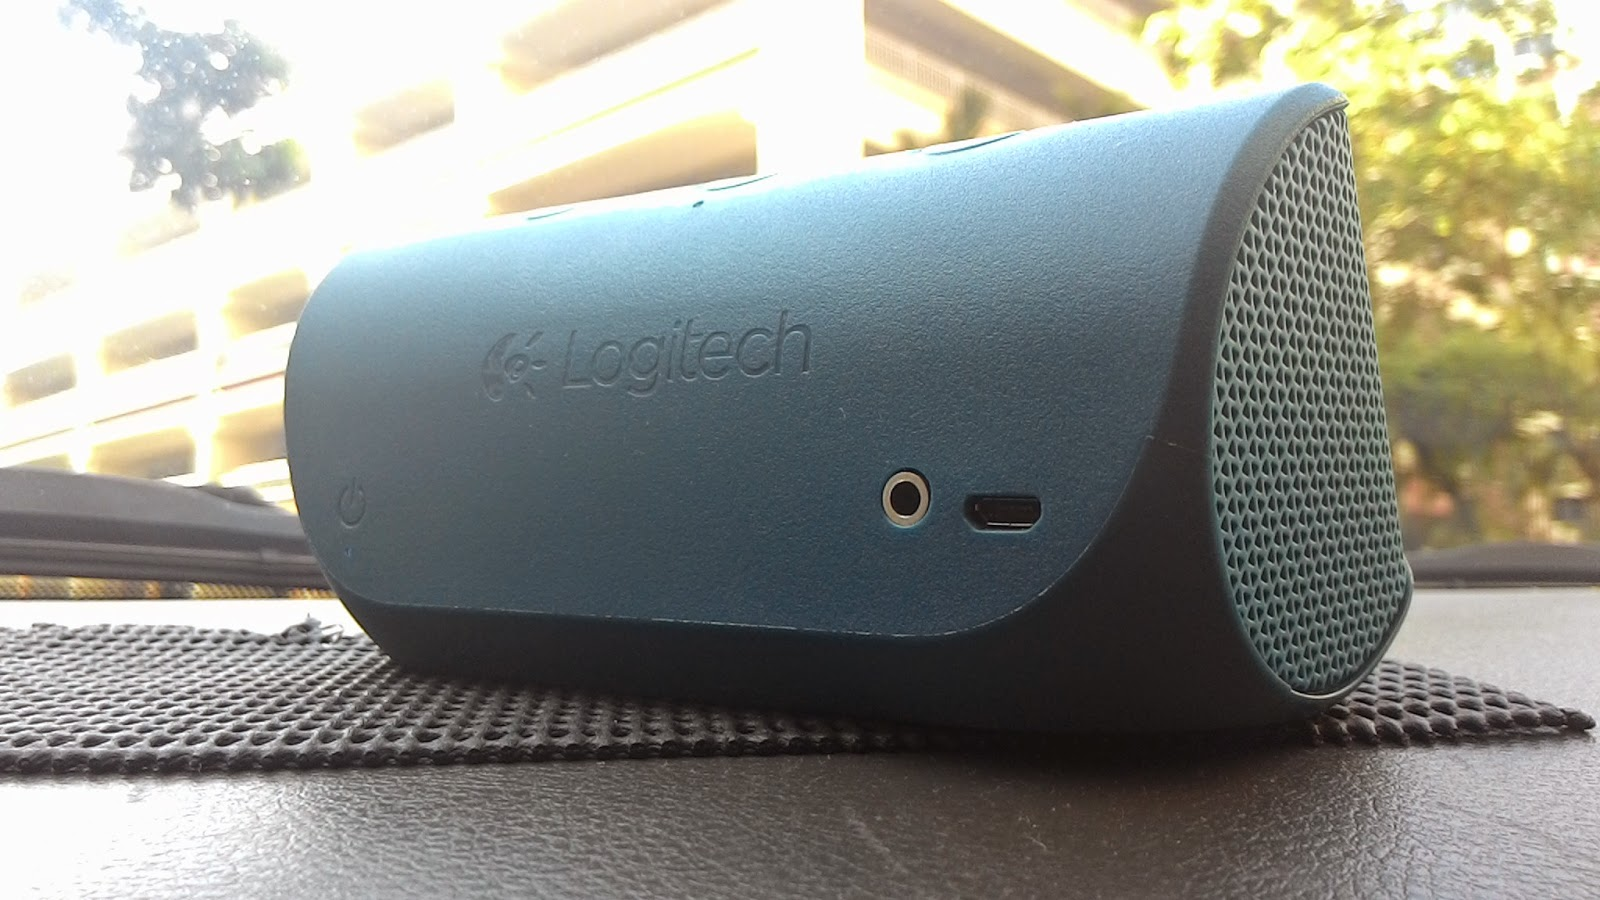 Probably the best Bluetooth Speakers so far - Logitech X300 - The